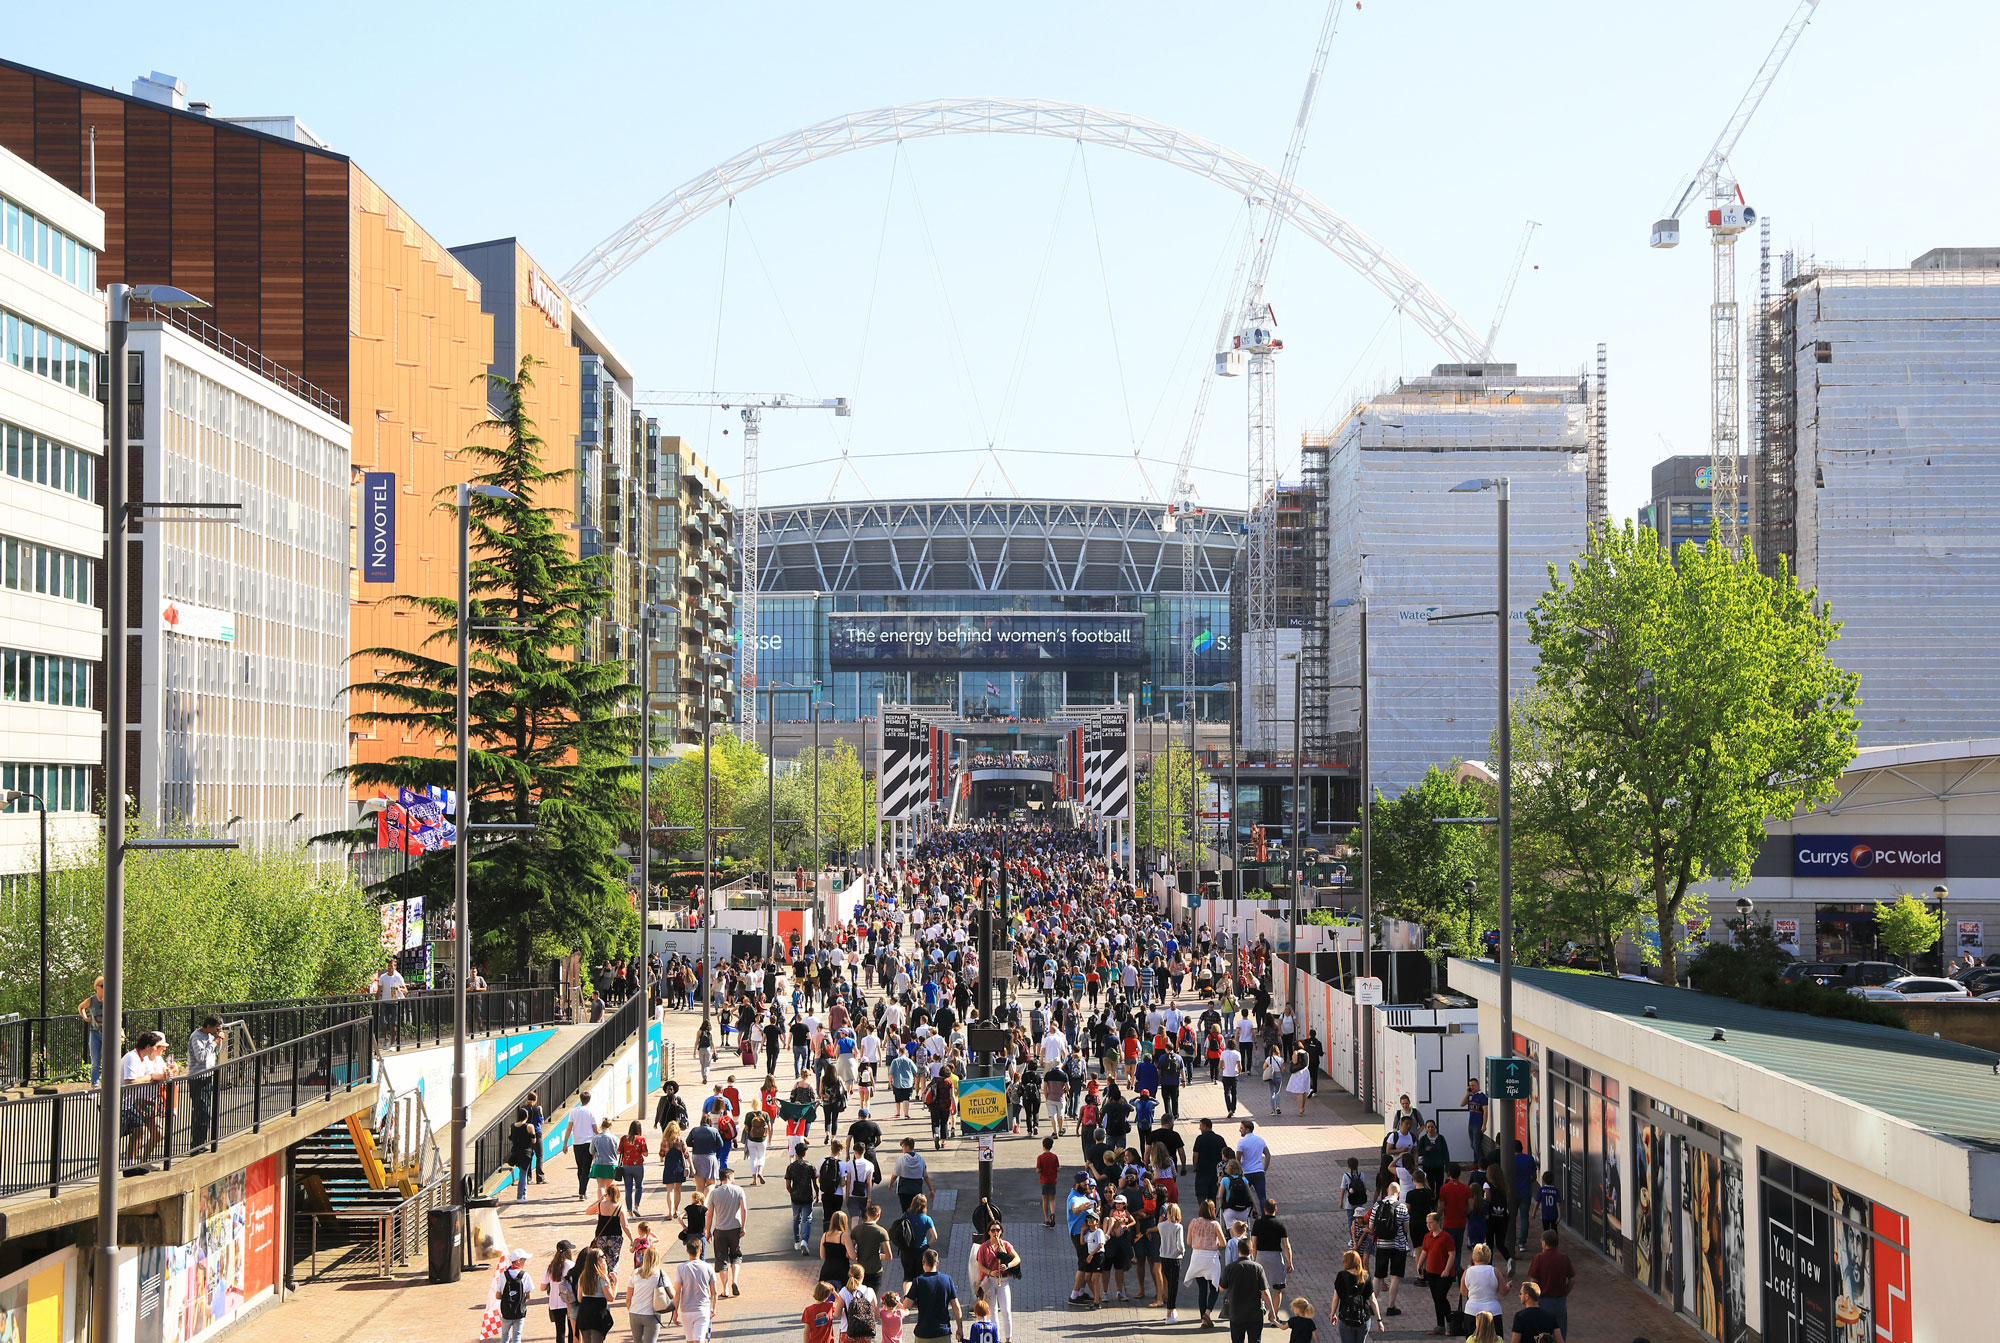 The route to the stadium, Olympic Way, planted with trees to reduce carbon Photo: Monica Wells/Alamy